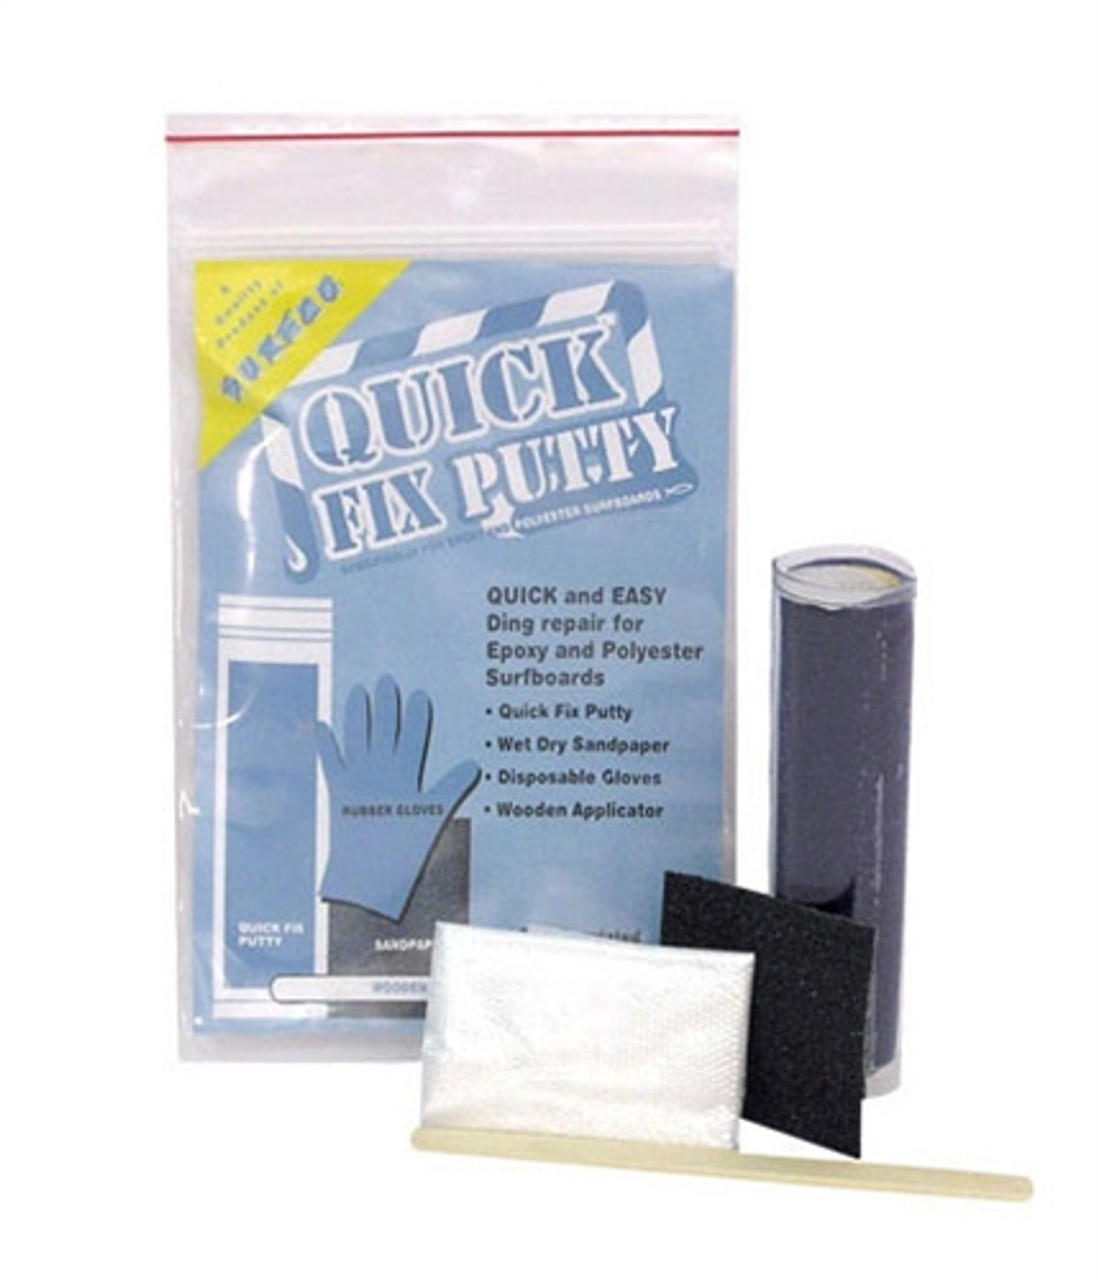 quick fix epoxy putty for polyester and epoxy surfboard repairs